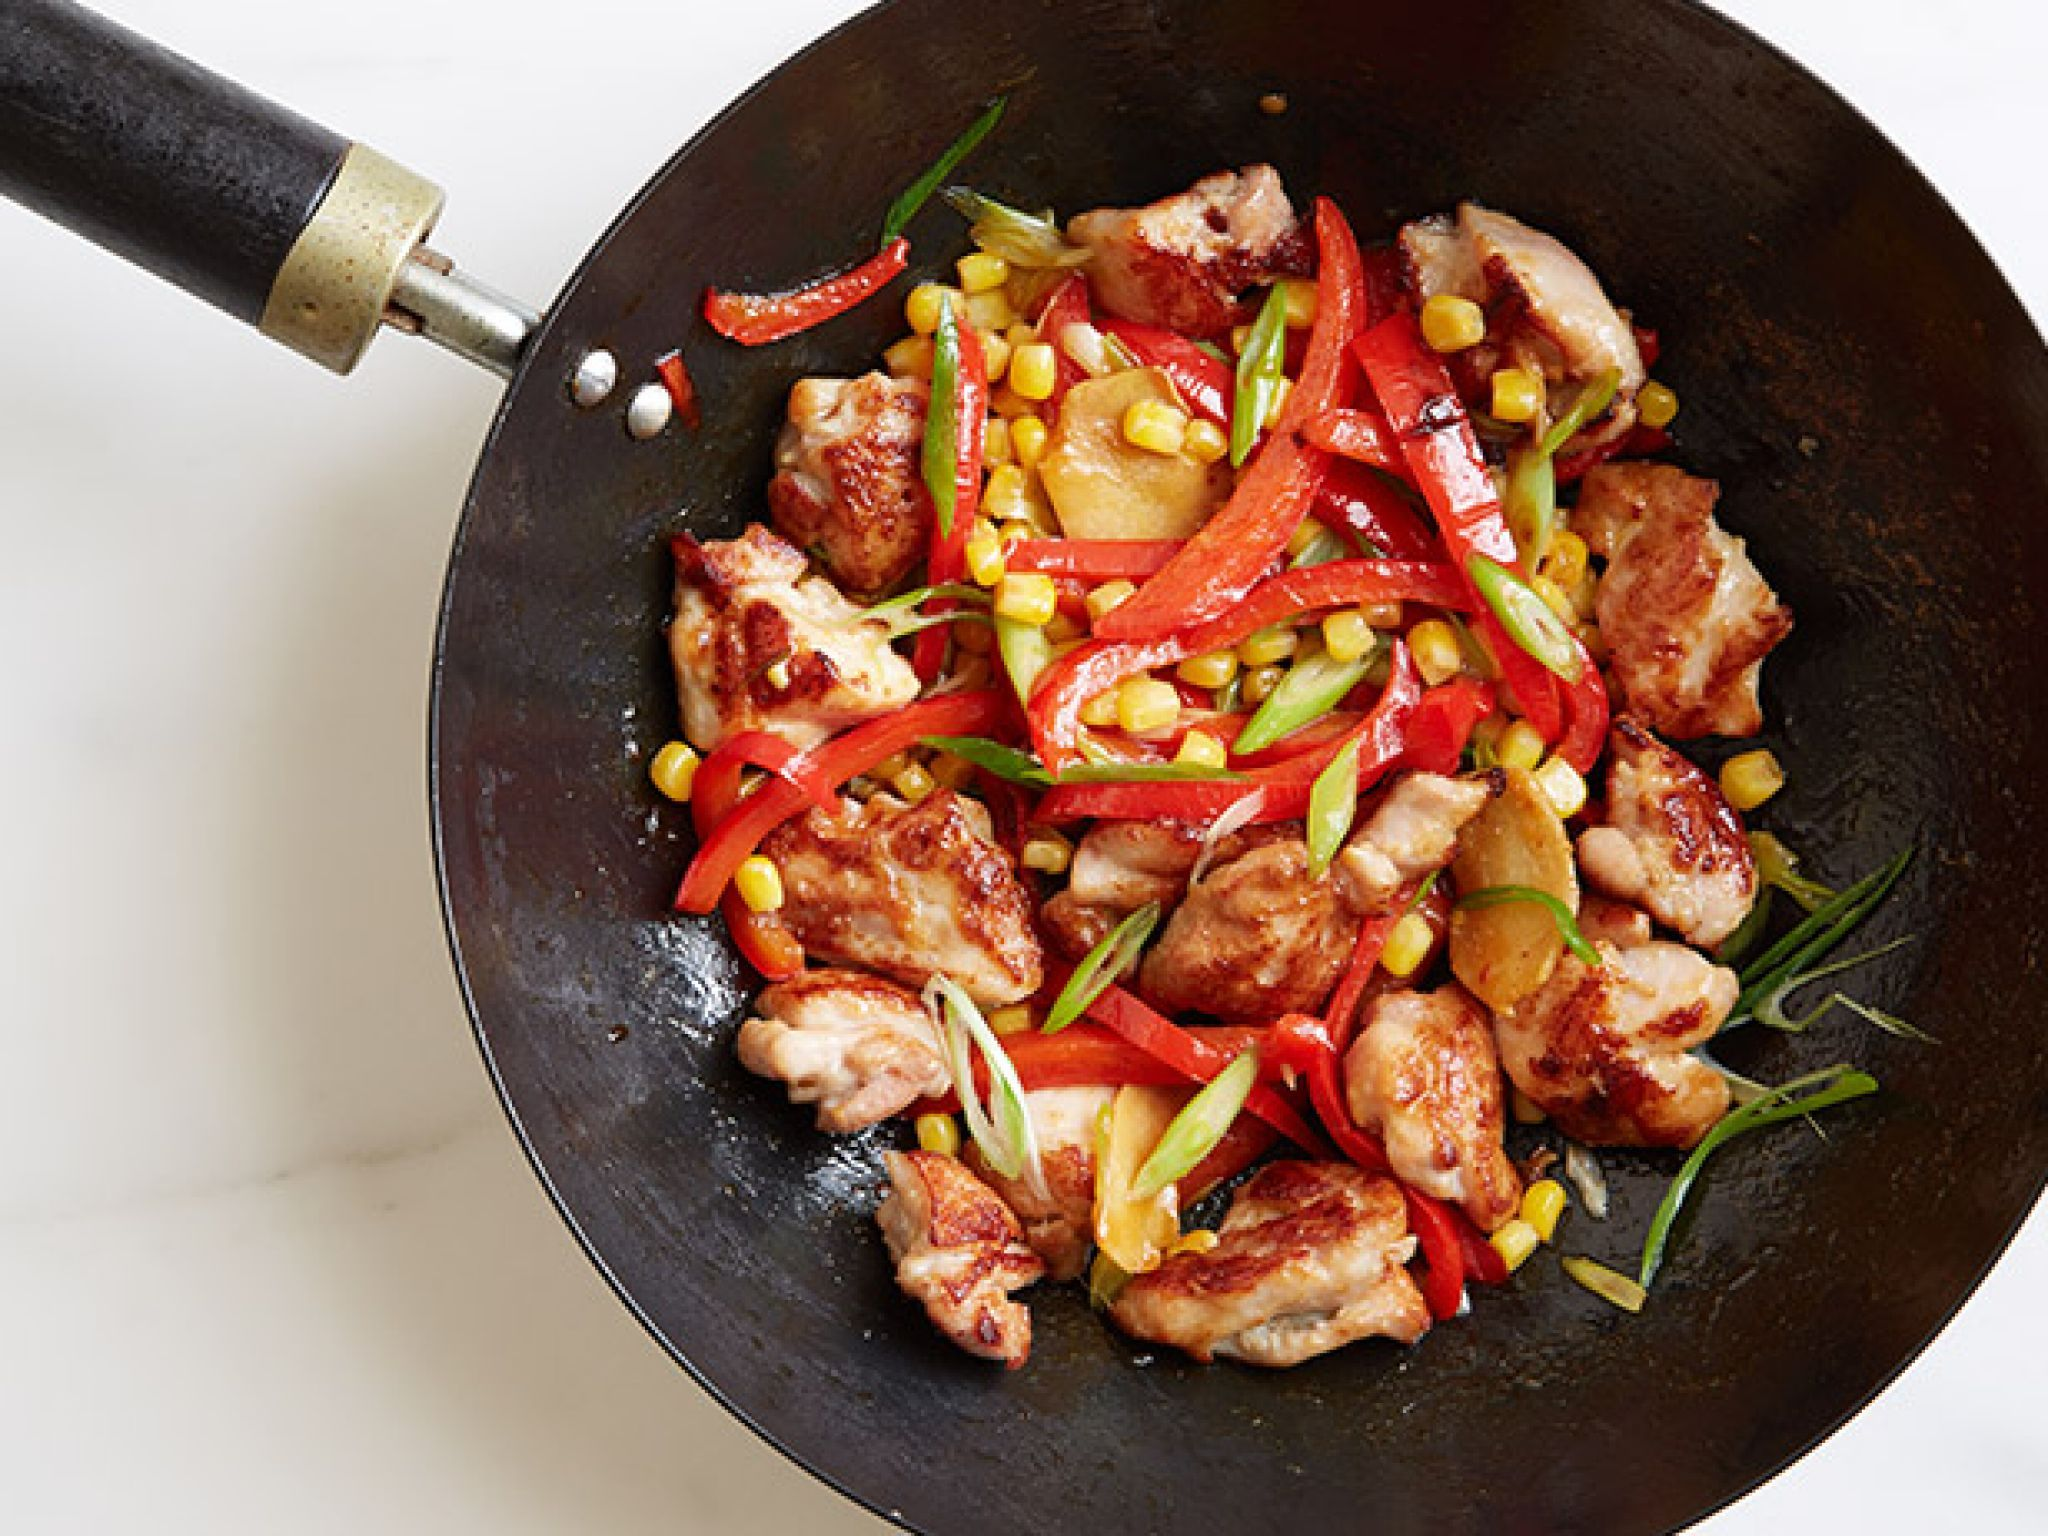 Chicken pepper and corn stir fry recipe stir fry get this all star easy to follow chicken pepper and corn cheap healthy dinnershealthy forumfinder Images